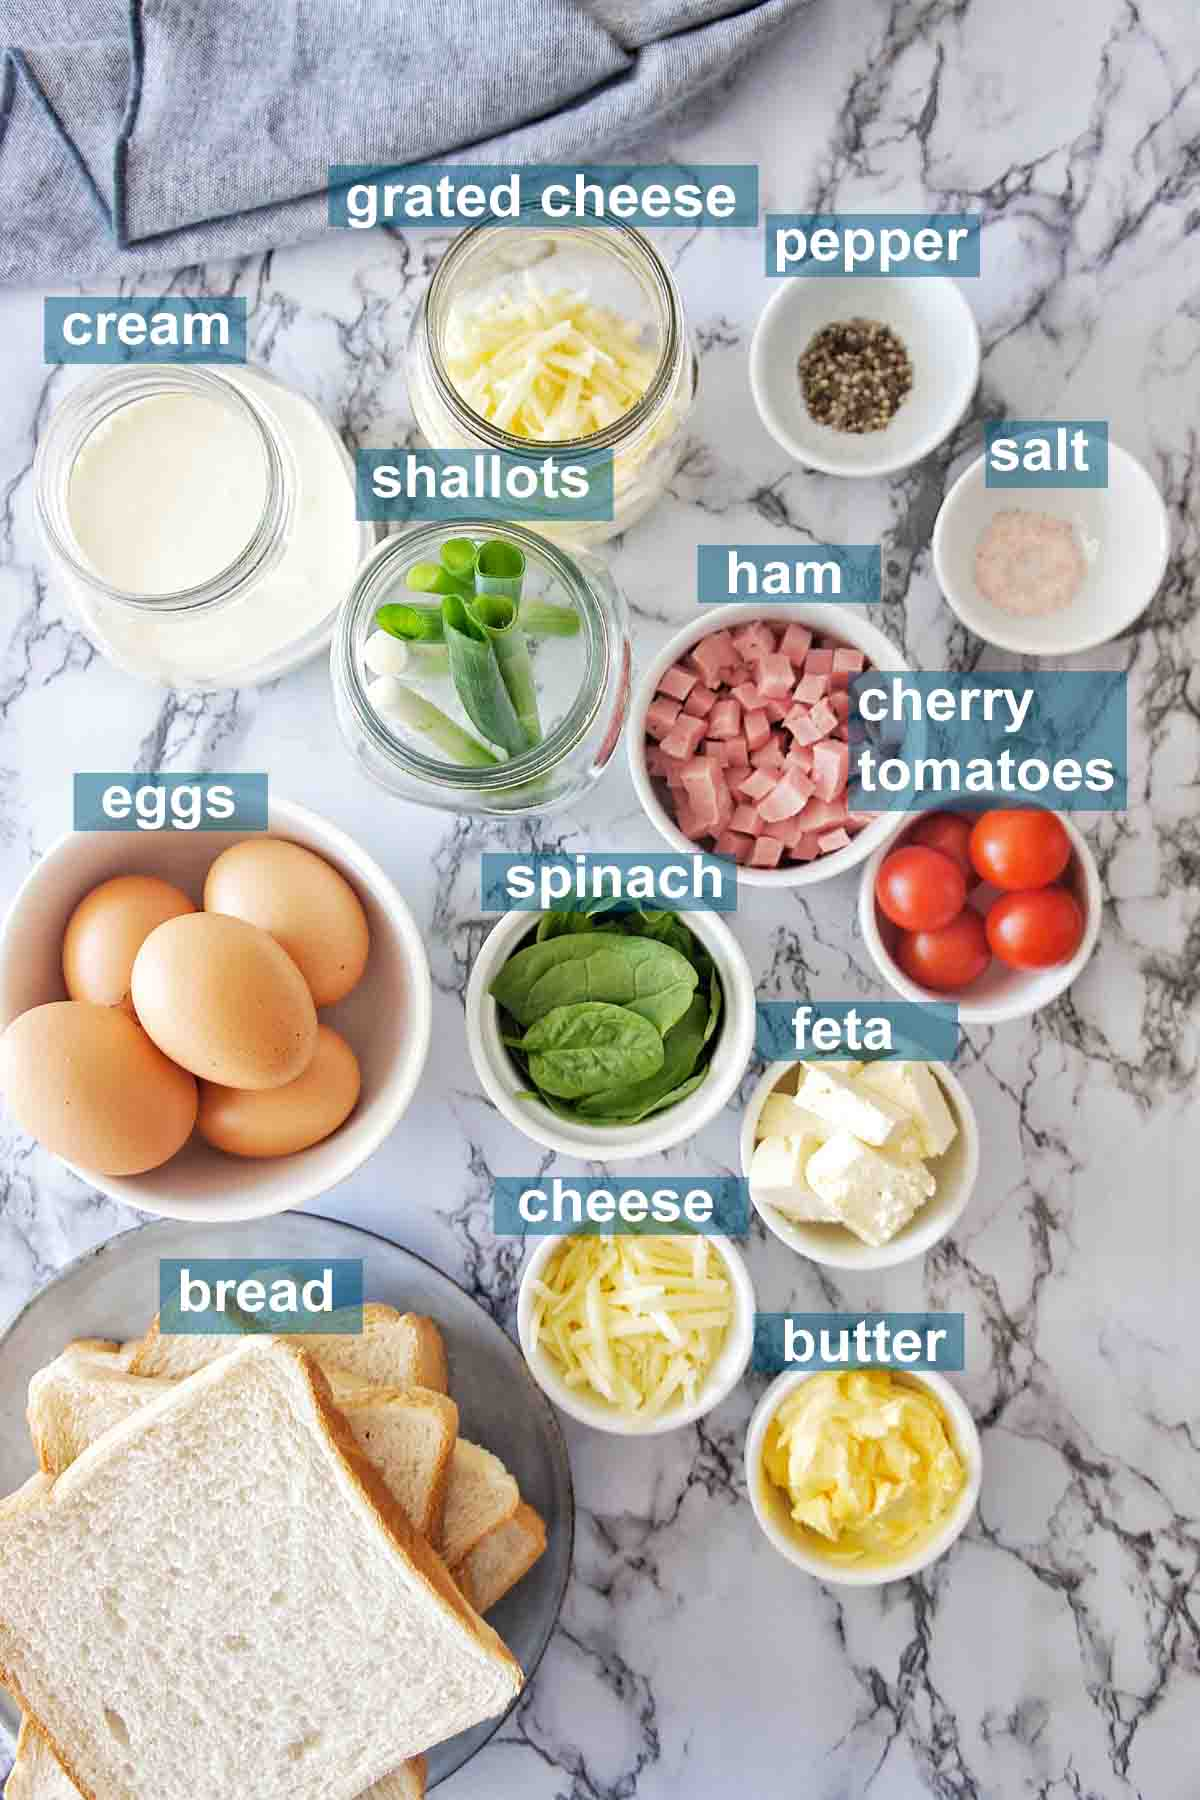 Ingredients for mini quiches on white background with text overlay